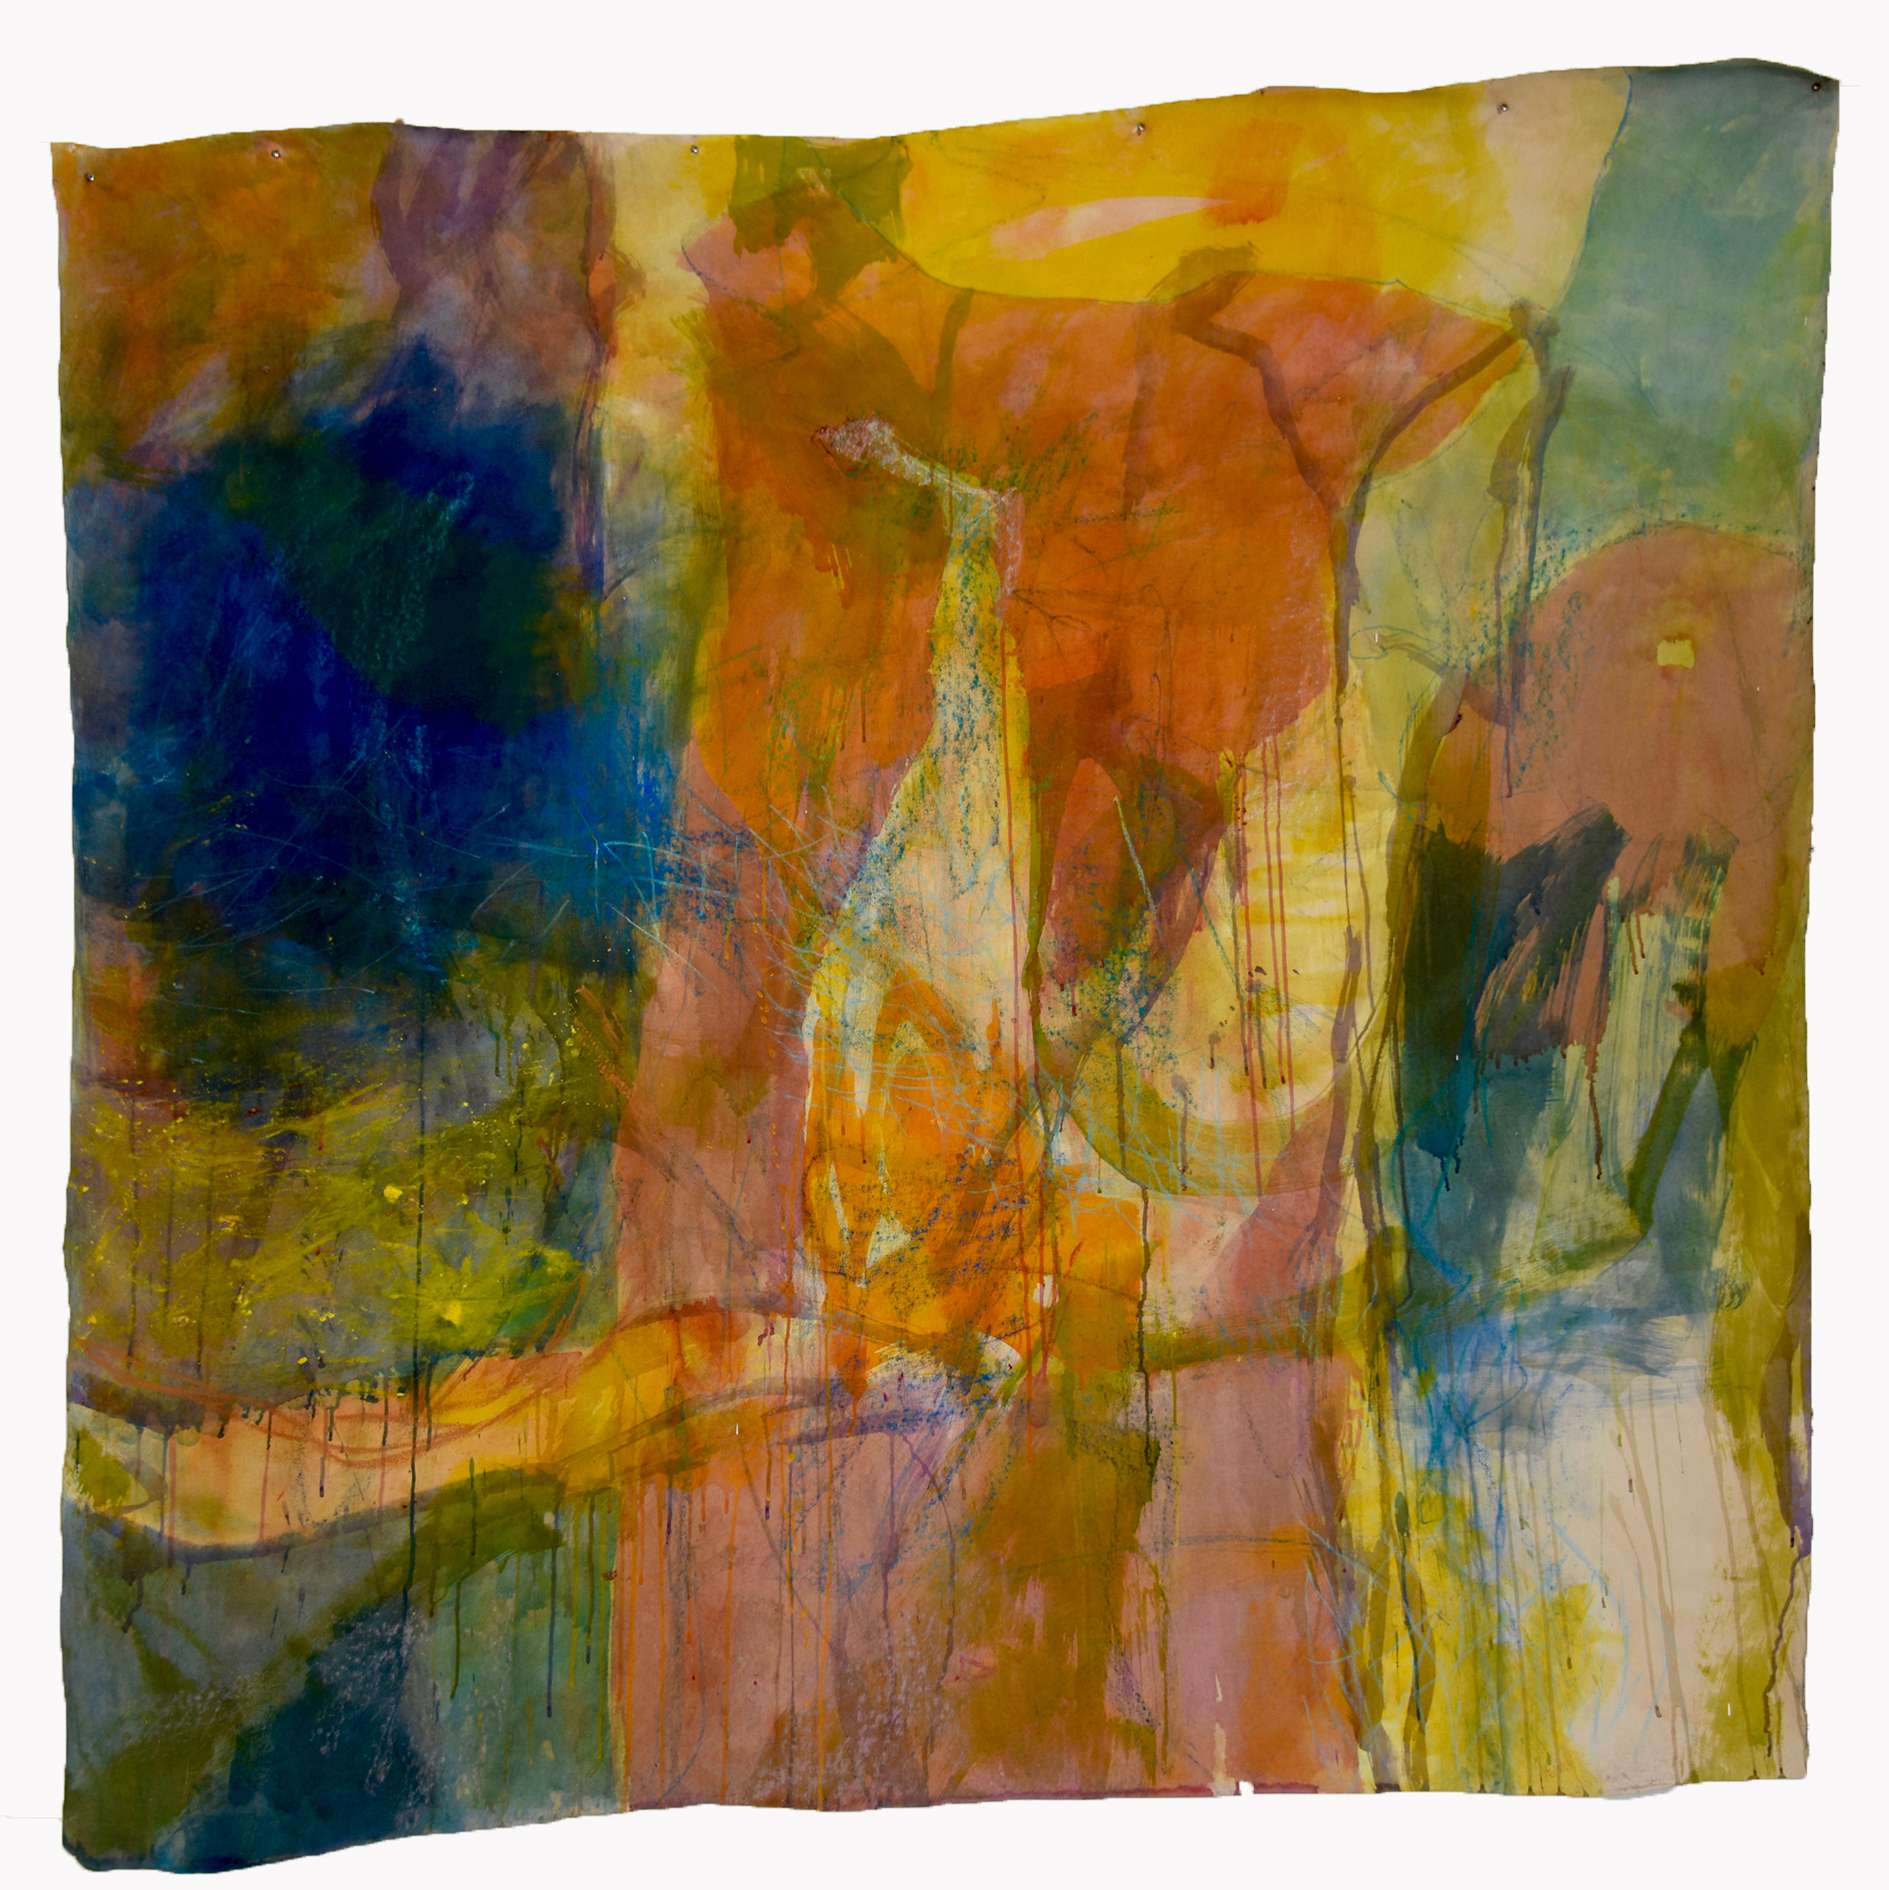 Untitled 16, 2000, Acrylic, oil pastel, soft pastel on canvas, 190 x 195 cm, Detmold, Germany